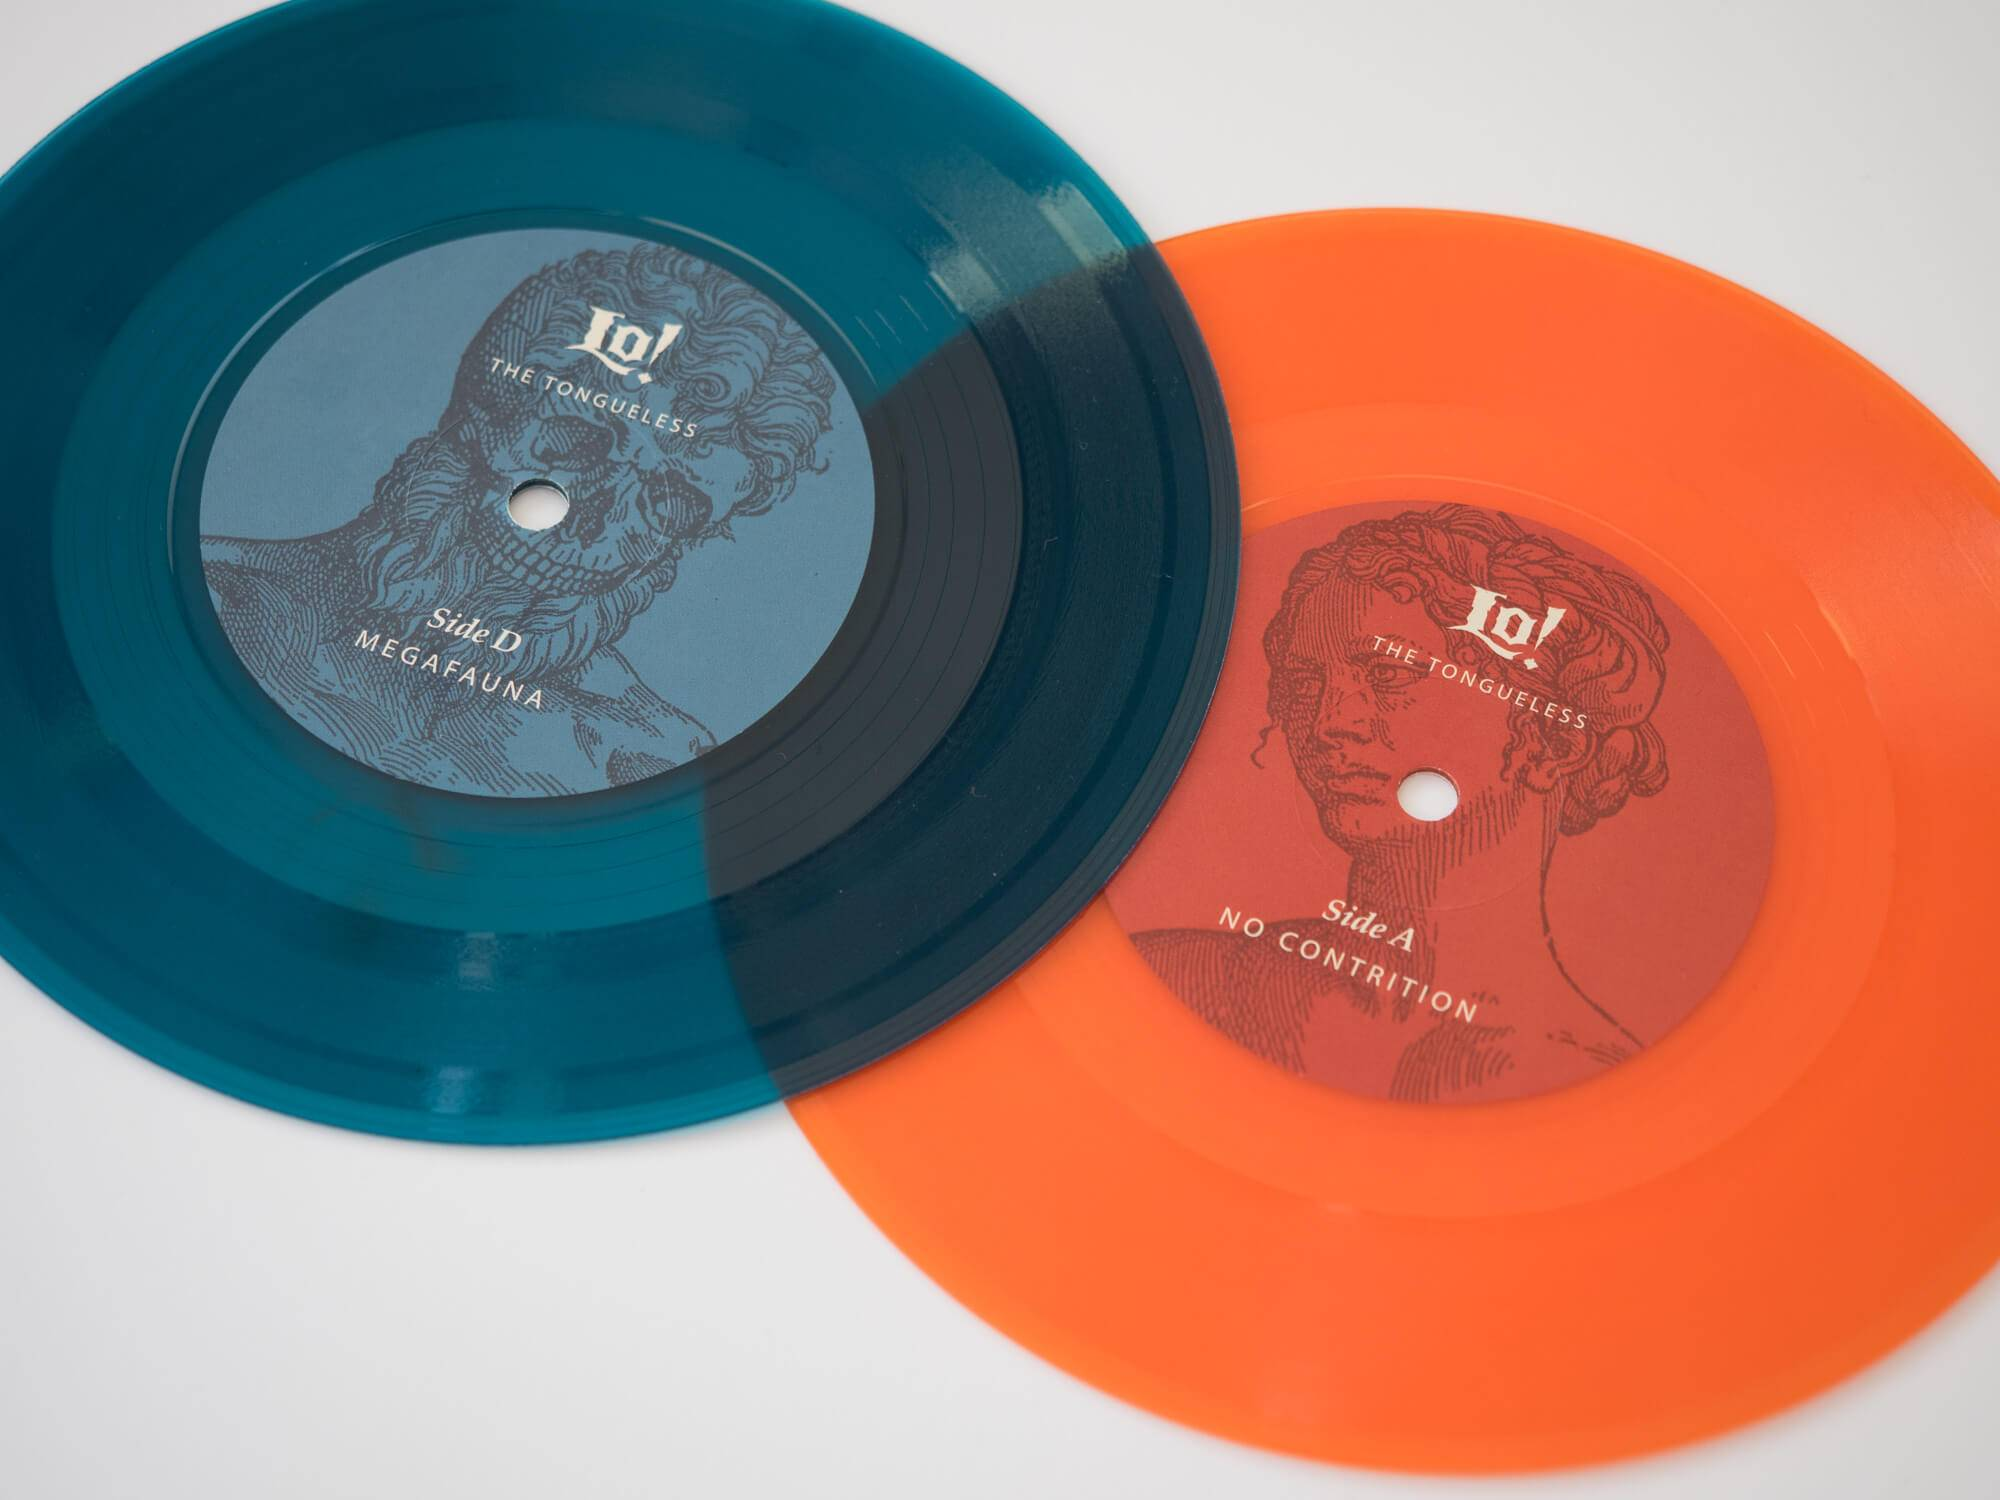 """Lo! - The Tongueless Double 7"""" EP"""